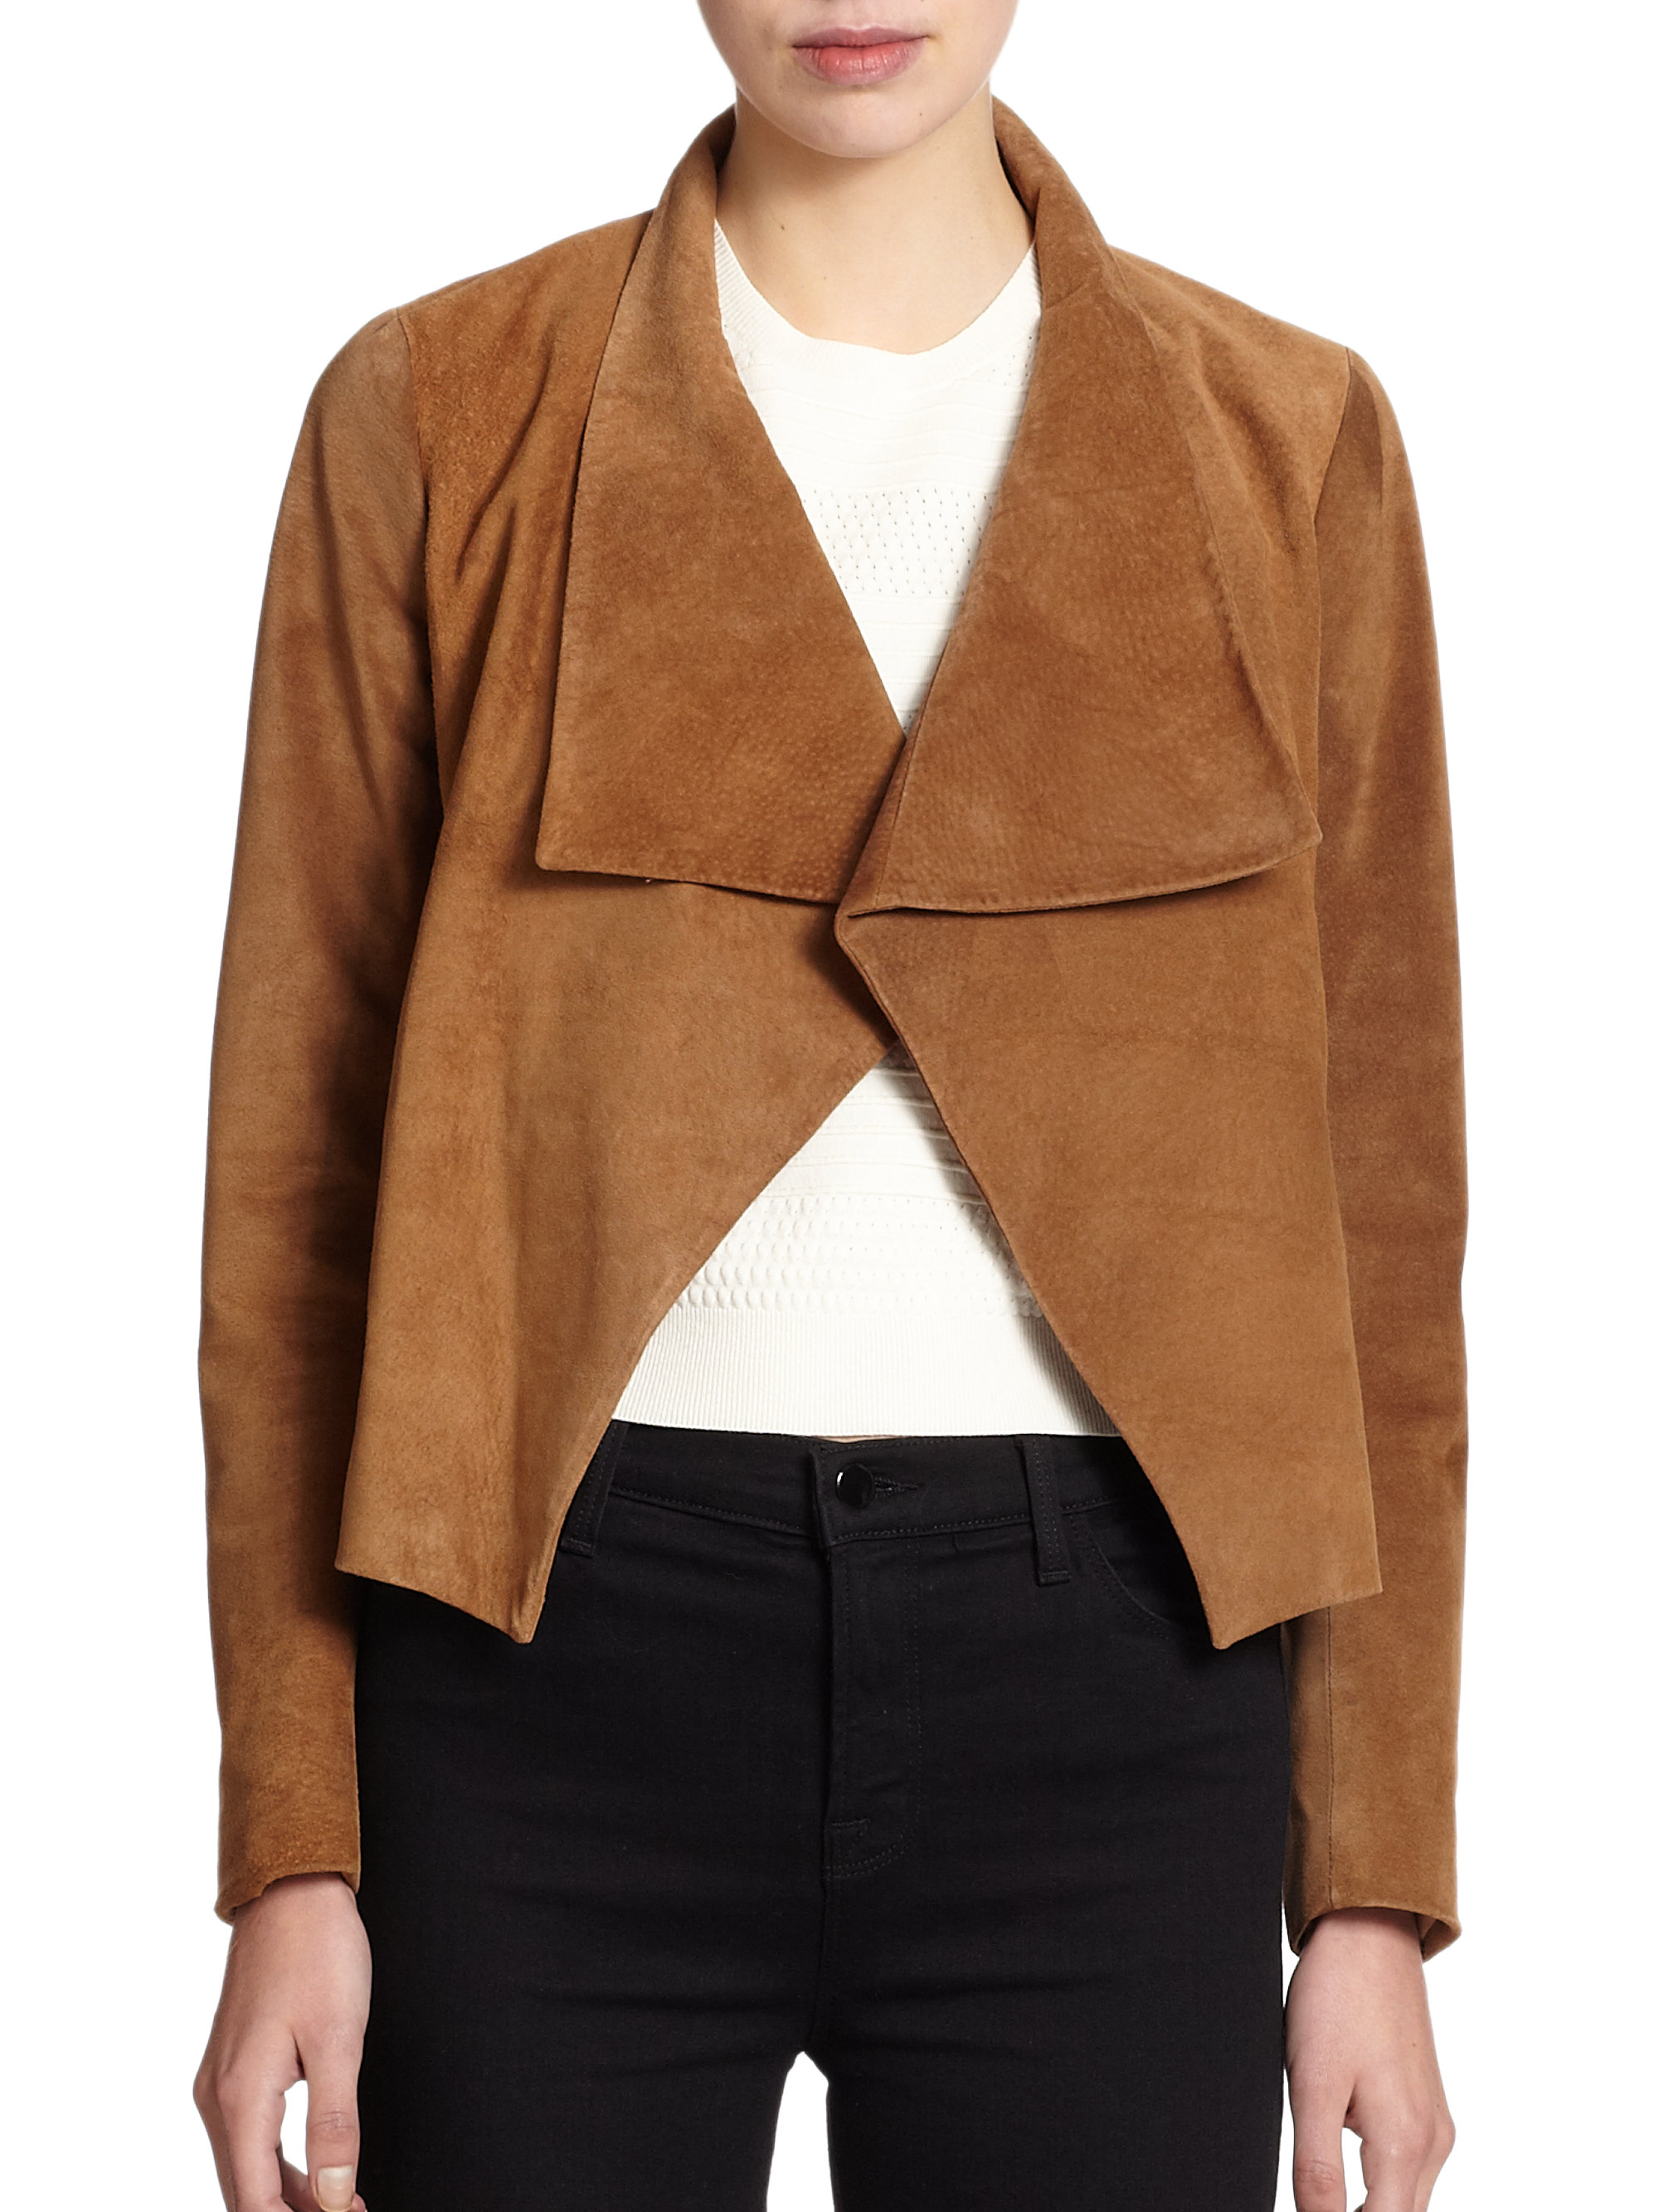 Suede Jacket Outfits For Men 20 Ways To Wear A Suede Jacket: Theory Kanya Cropped Suede Jacket In Brown